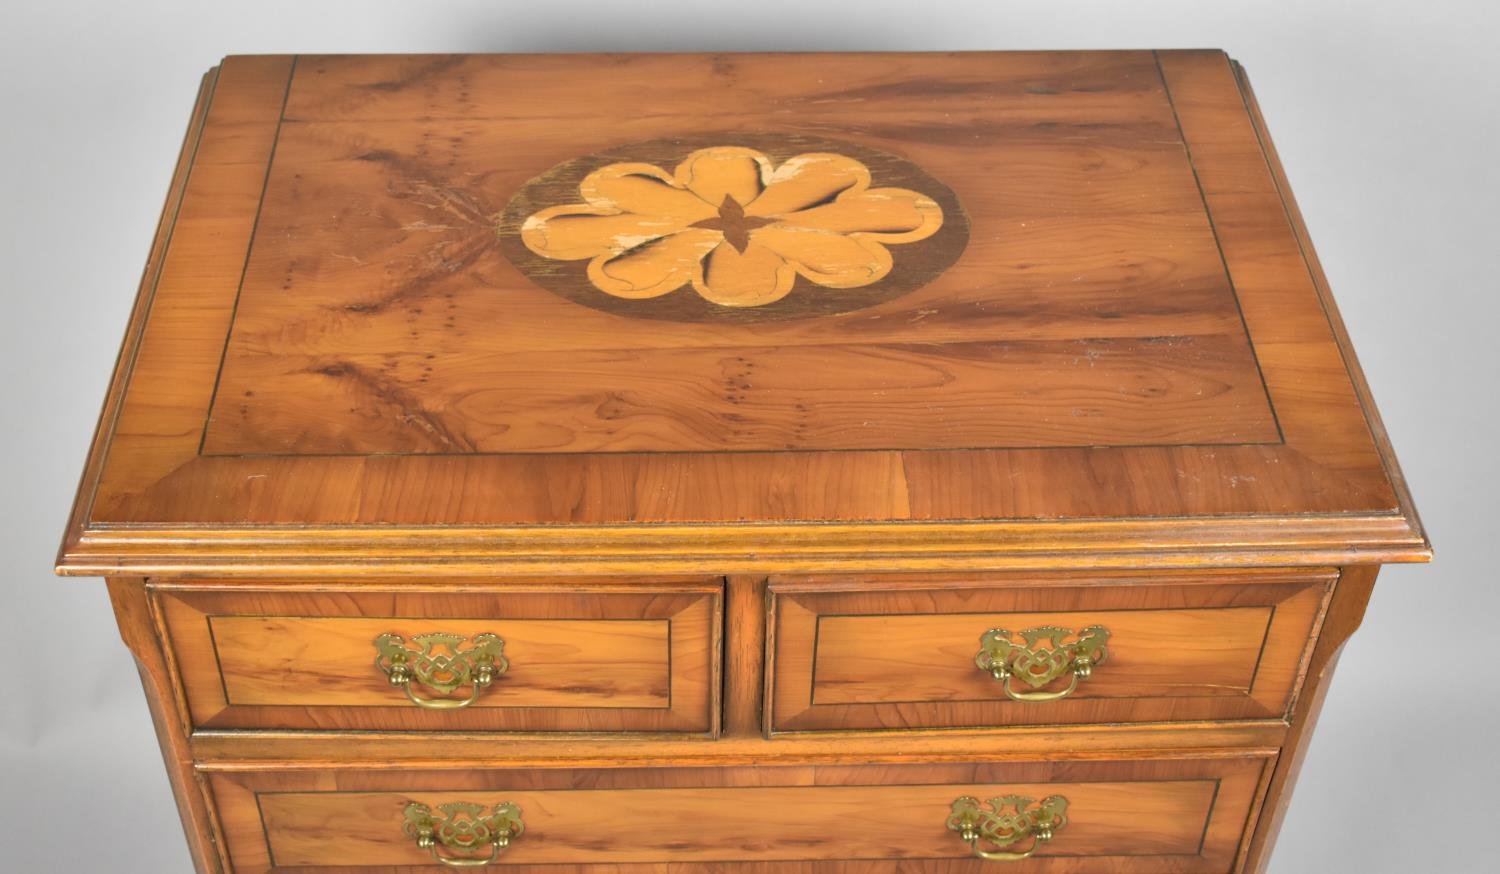 A Modern Crossbanded Yew Wood Miniature Chest of Two Short and Three Long Drawers, 63cm x 40cm x - Image 2 of 2